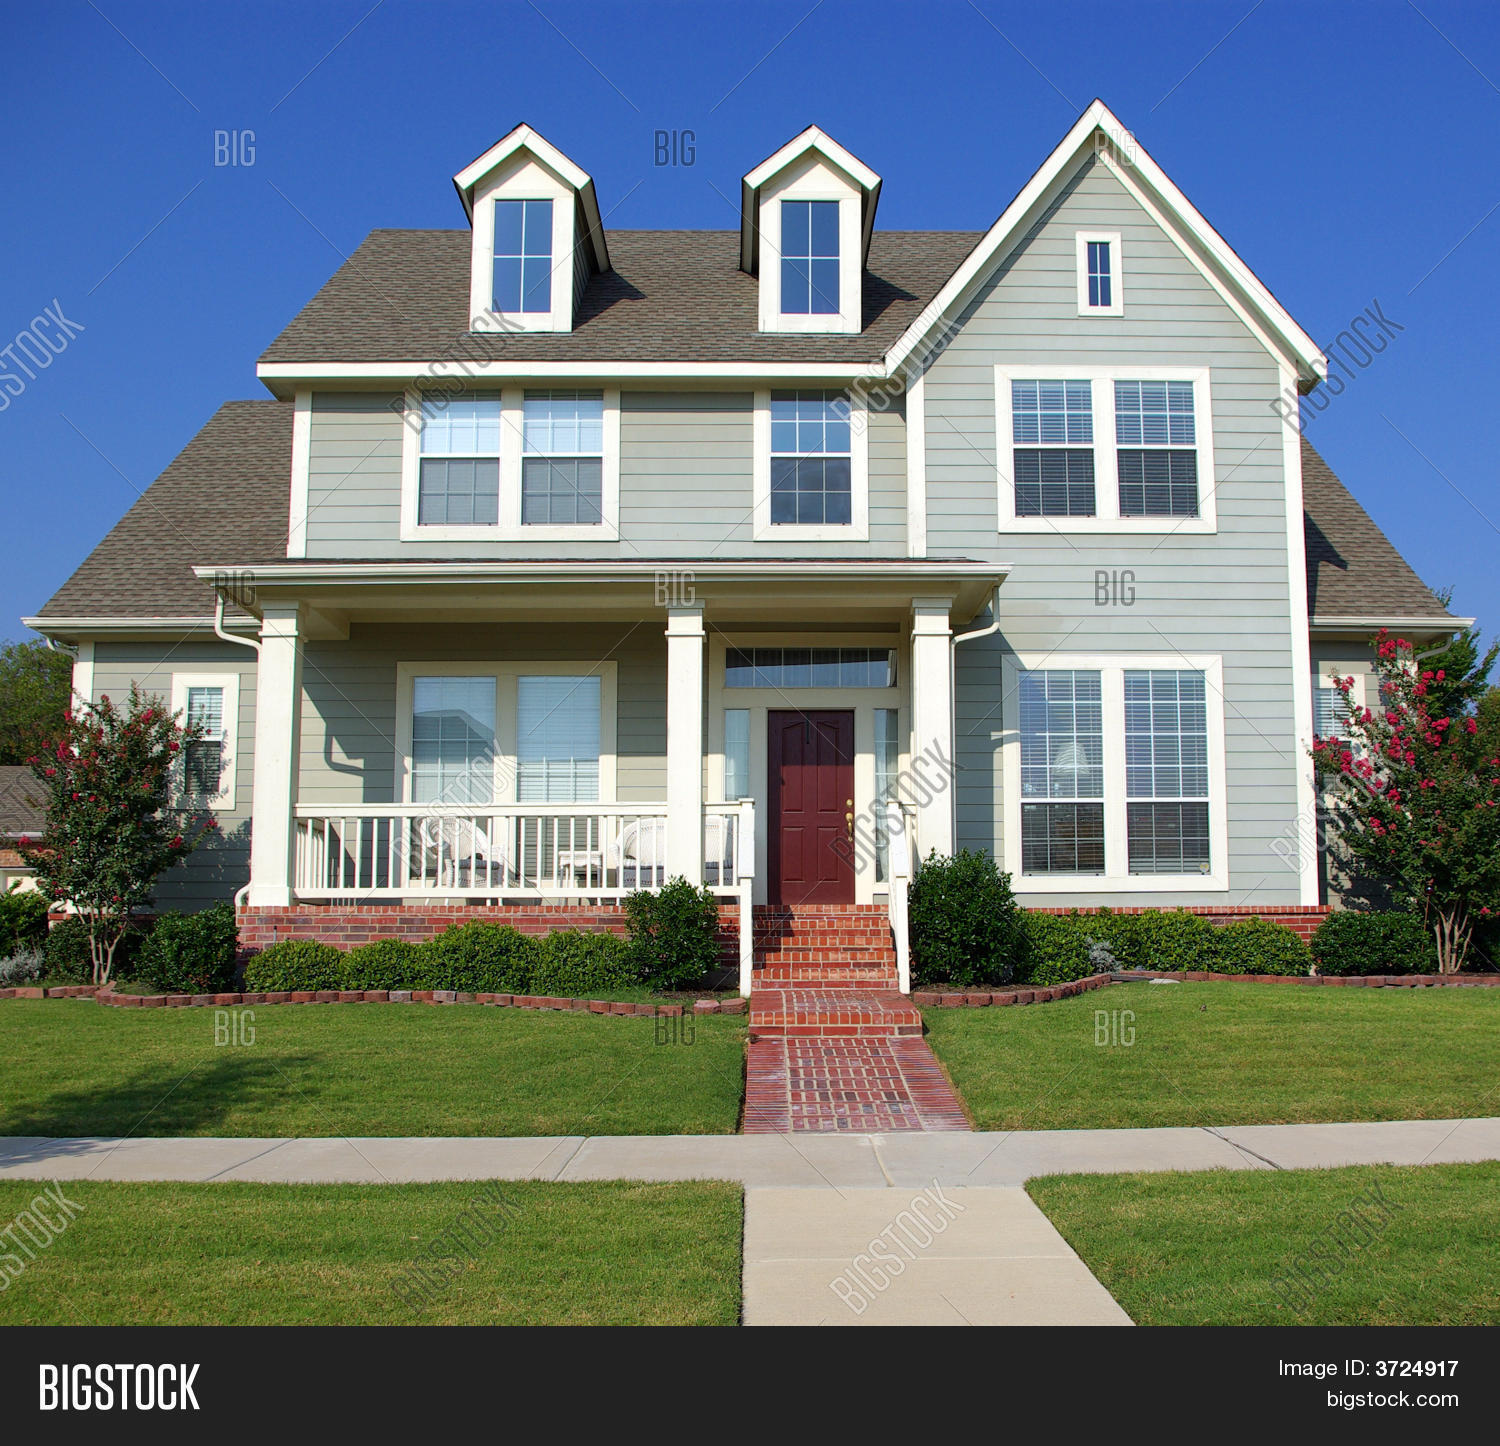 Victorian style american home stock photo stock images for Big two story houses